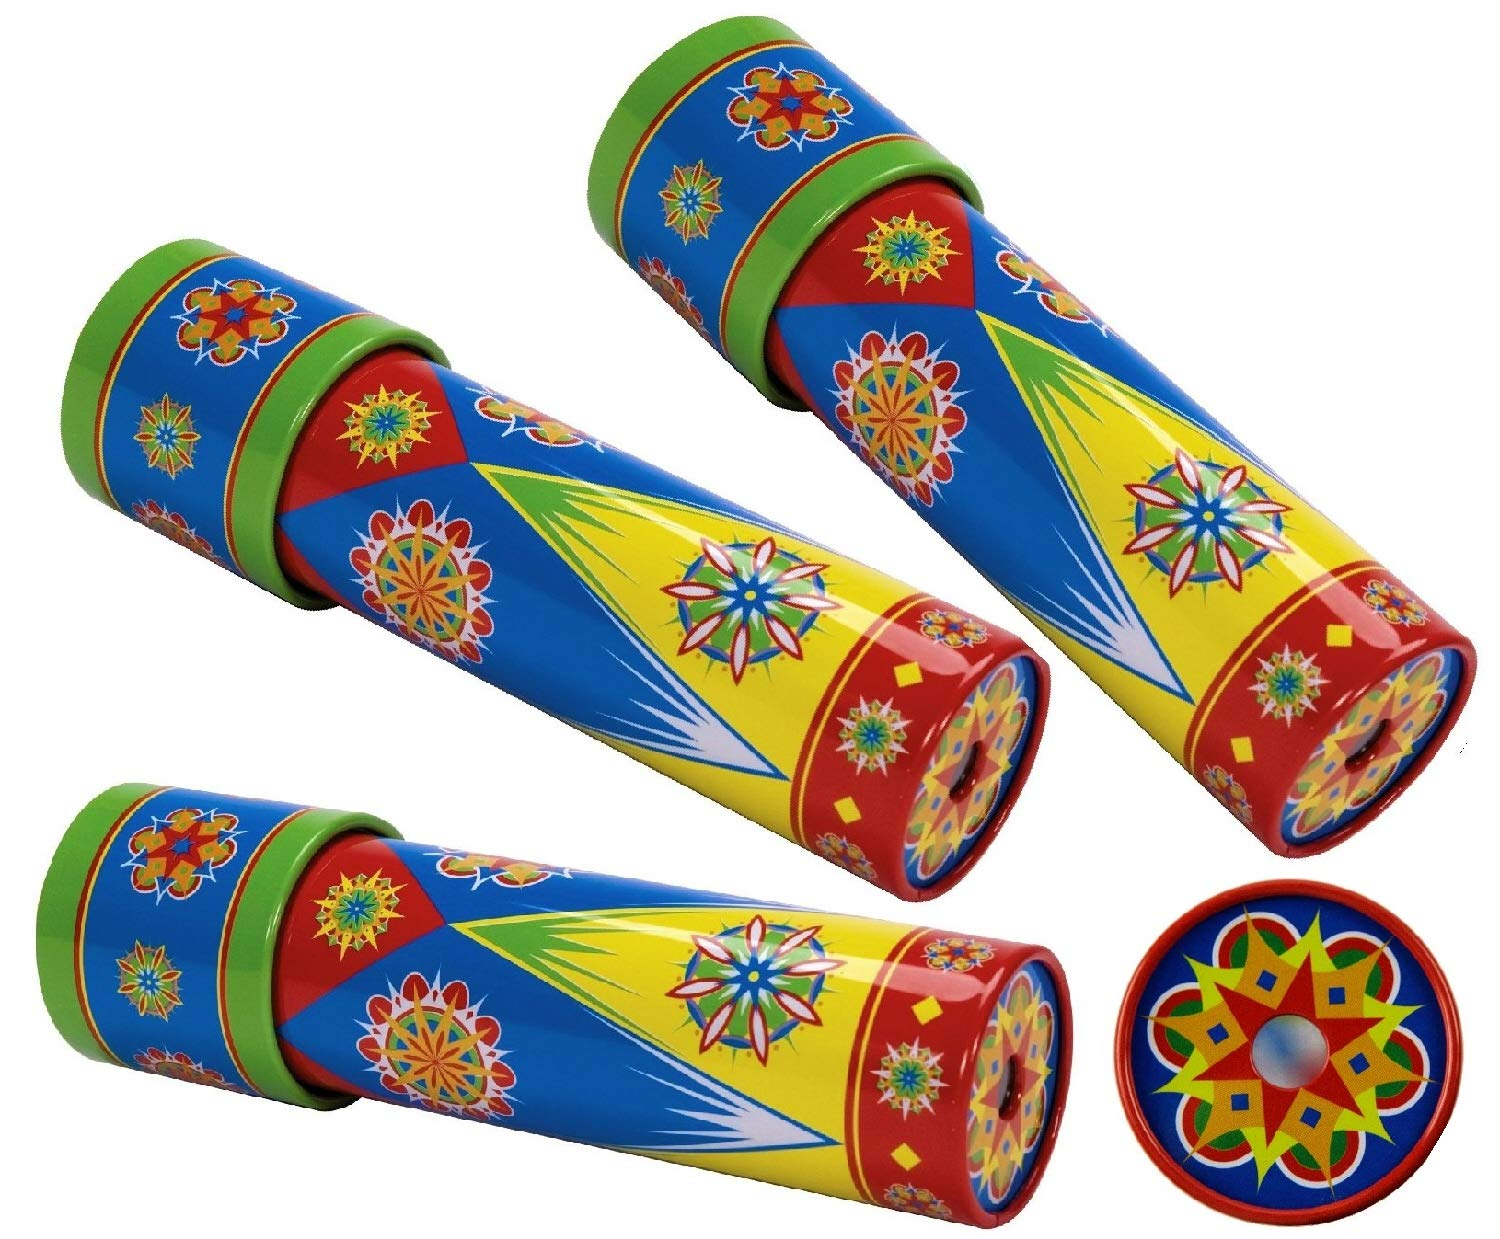 Schylling Classic Tin Kaleidoscope Party Set Bundle Includes Exclusive Matty's Toy Stop Storage Bag - 3 Pack by Schylling (Image #1)